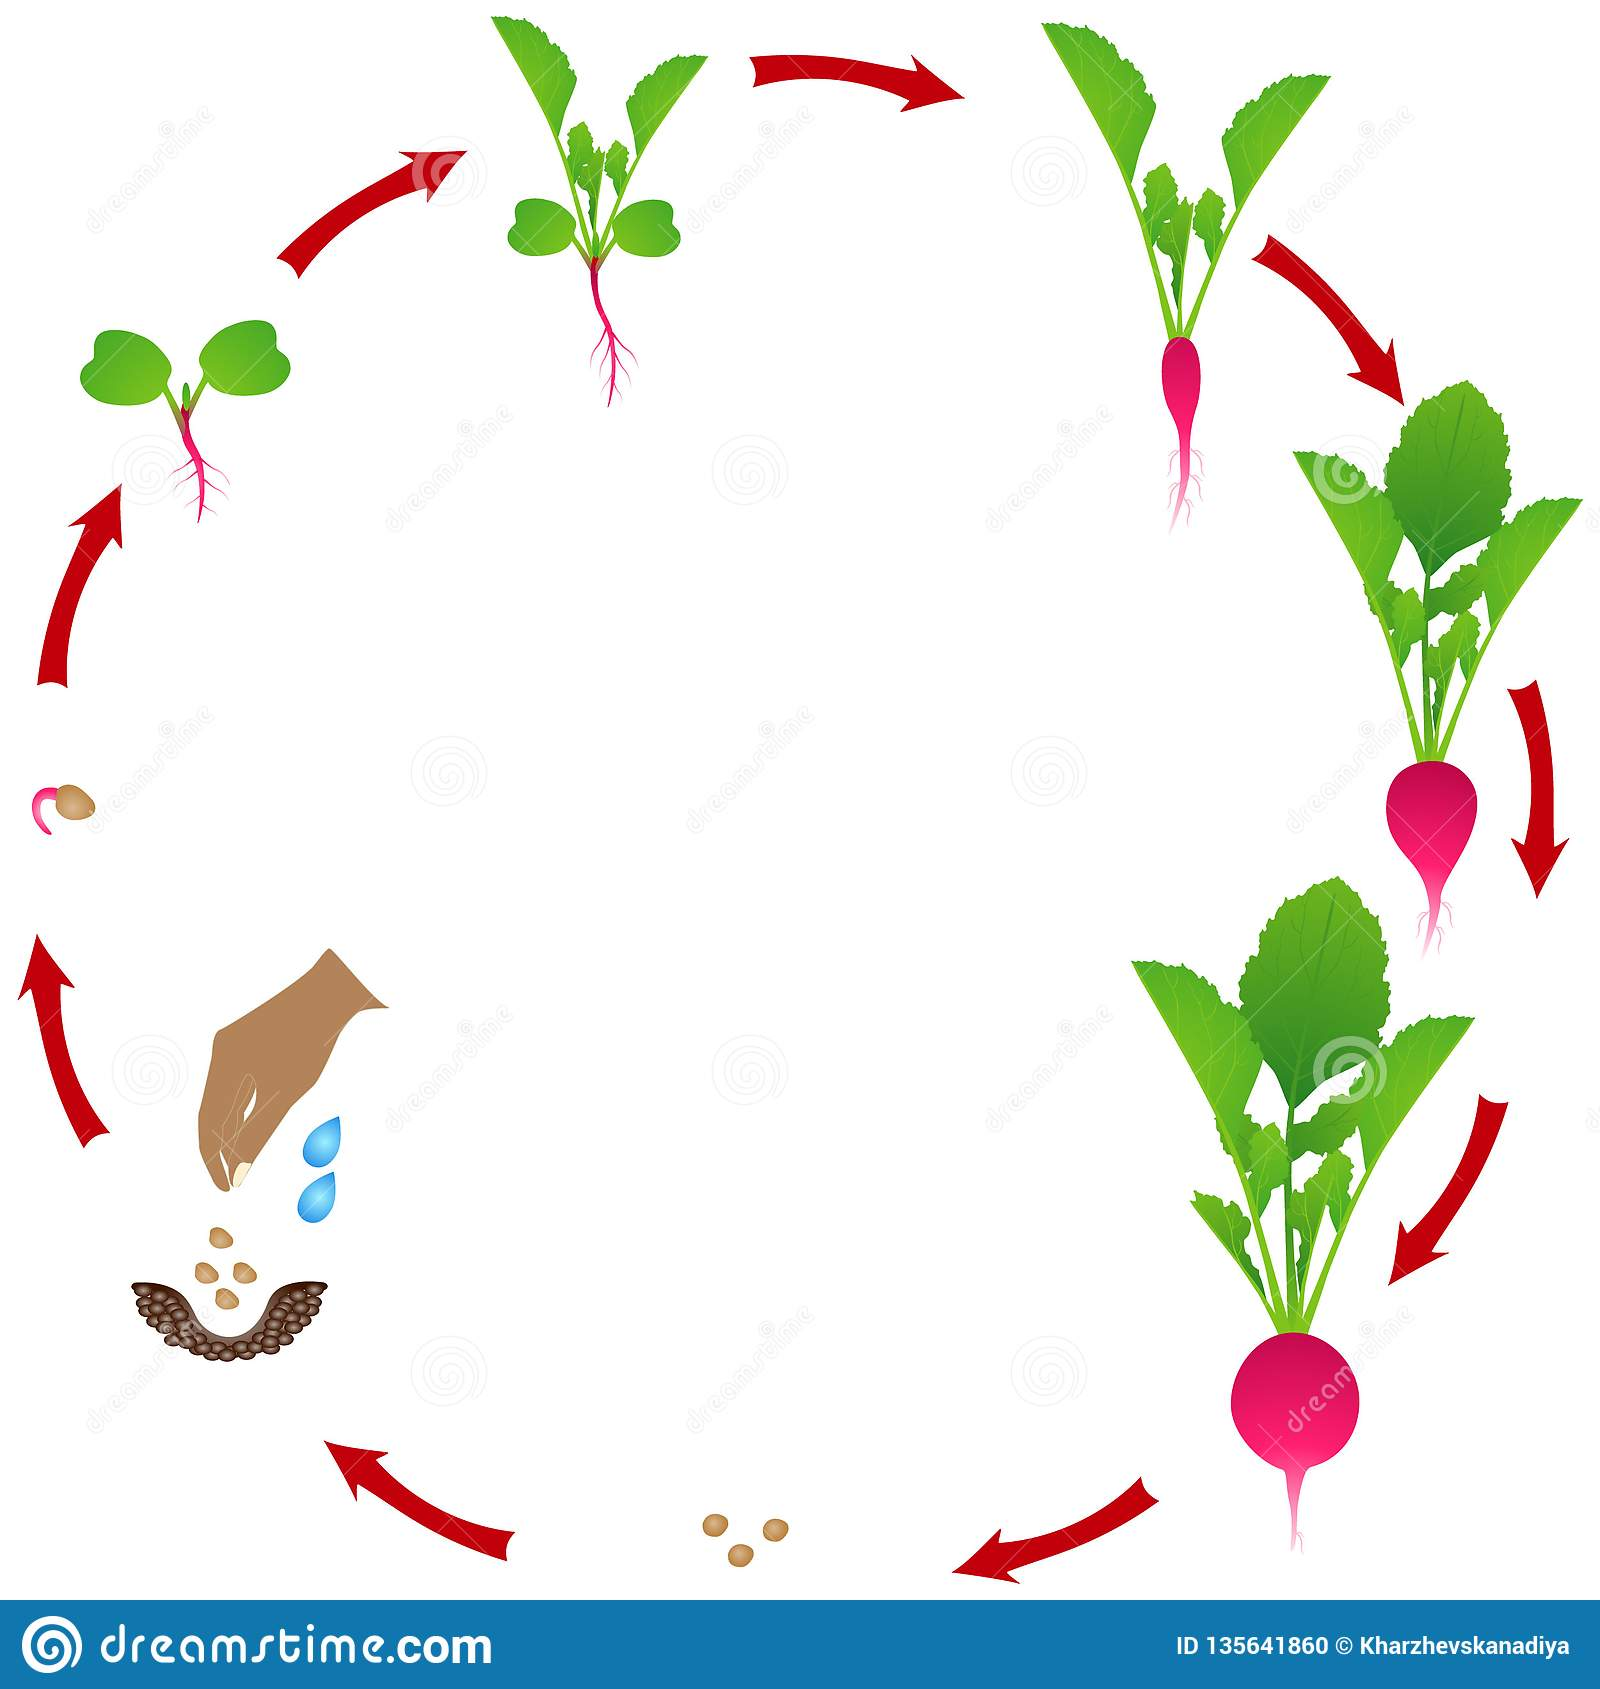 life cycle of radish plant on a white background stock. Black Bedroom Furniture Sets. Home Design Ideas